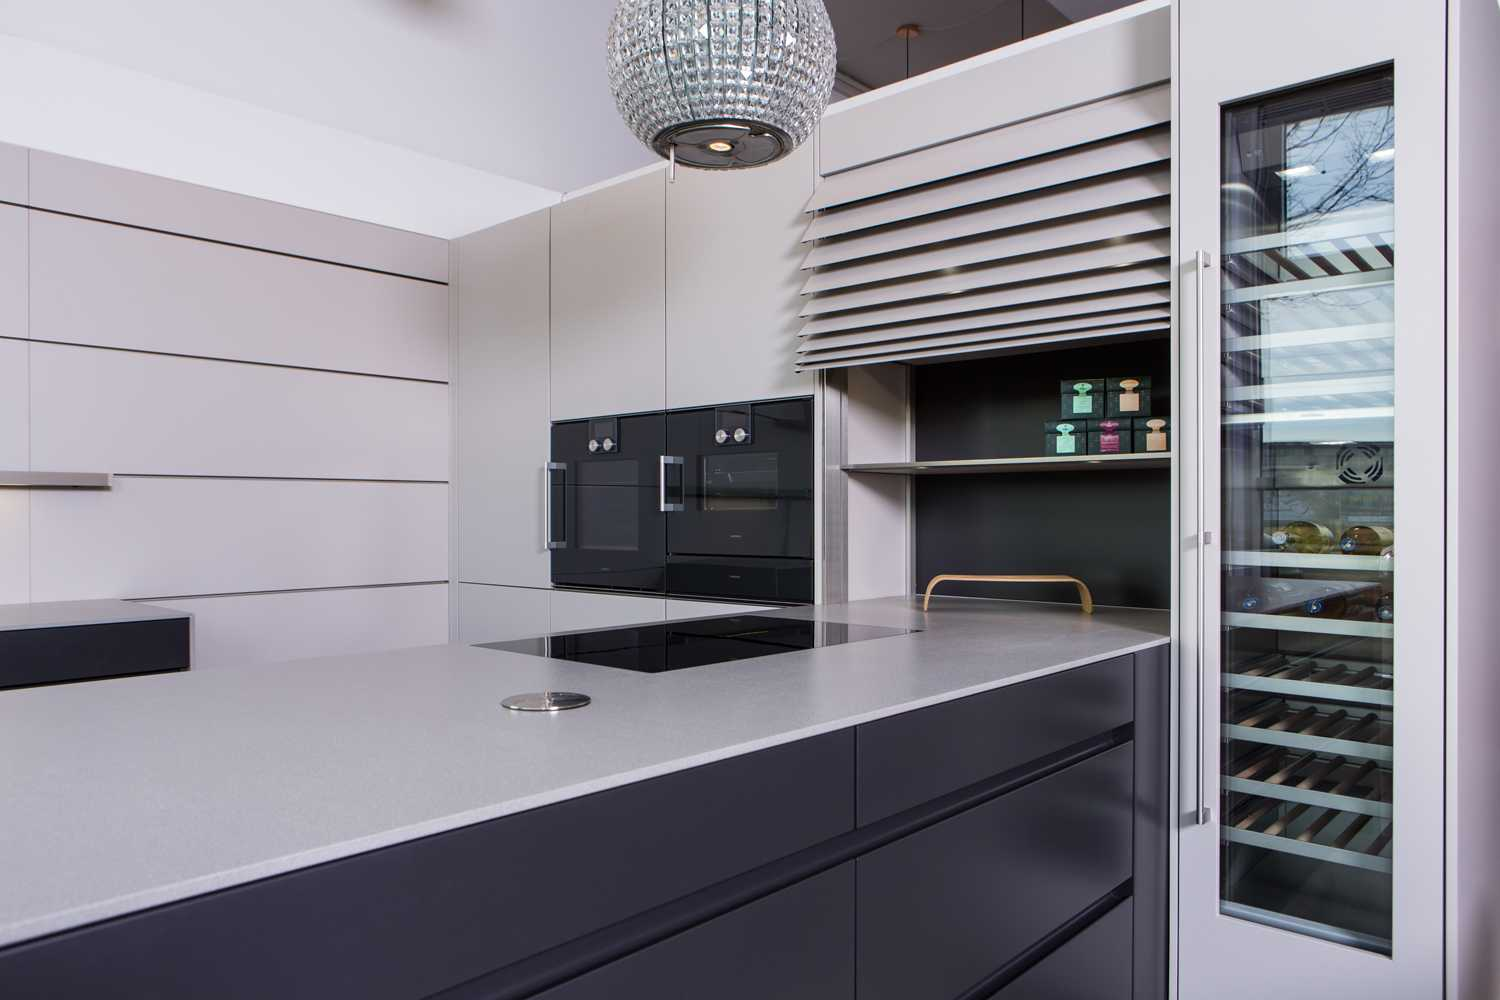 leicht kuechen gaggenau weinklimaschrank grifflos mit paneelsystem k chen konzept in leipzig. Black Bedroom Furniture Sets. Home Design Ideas